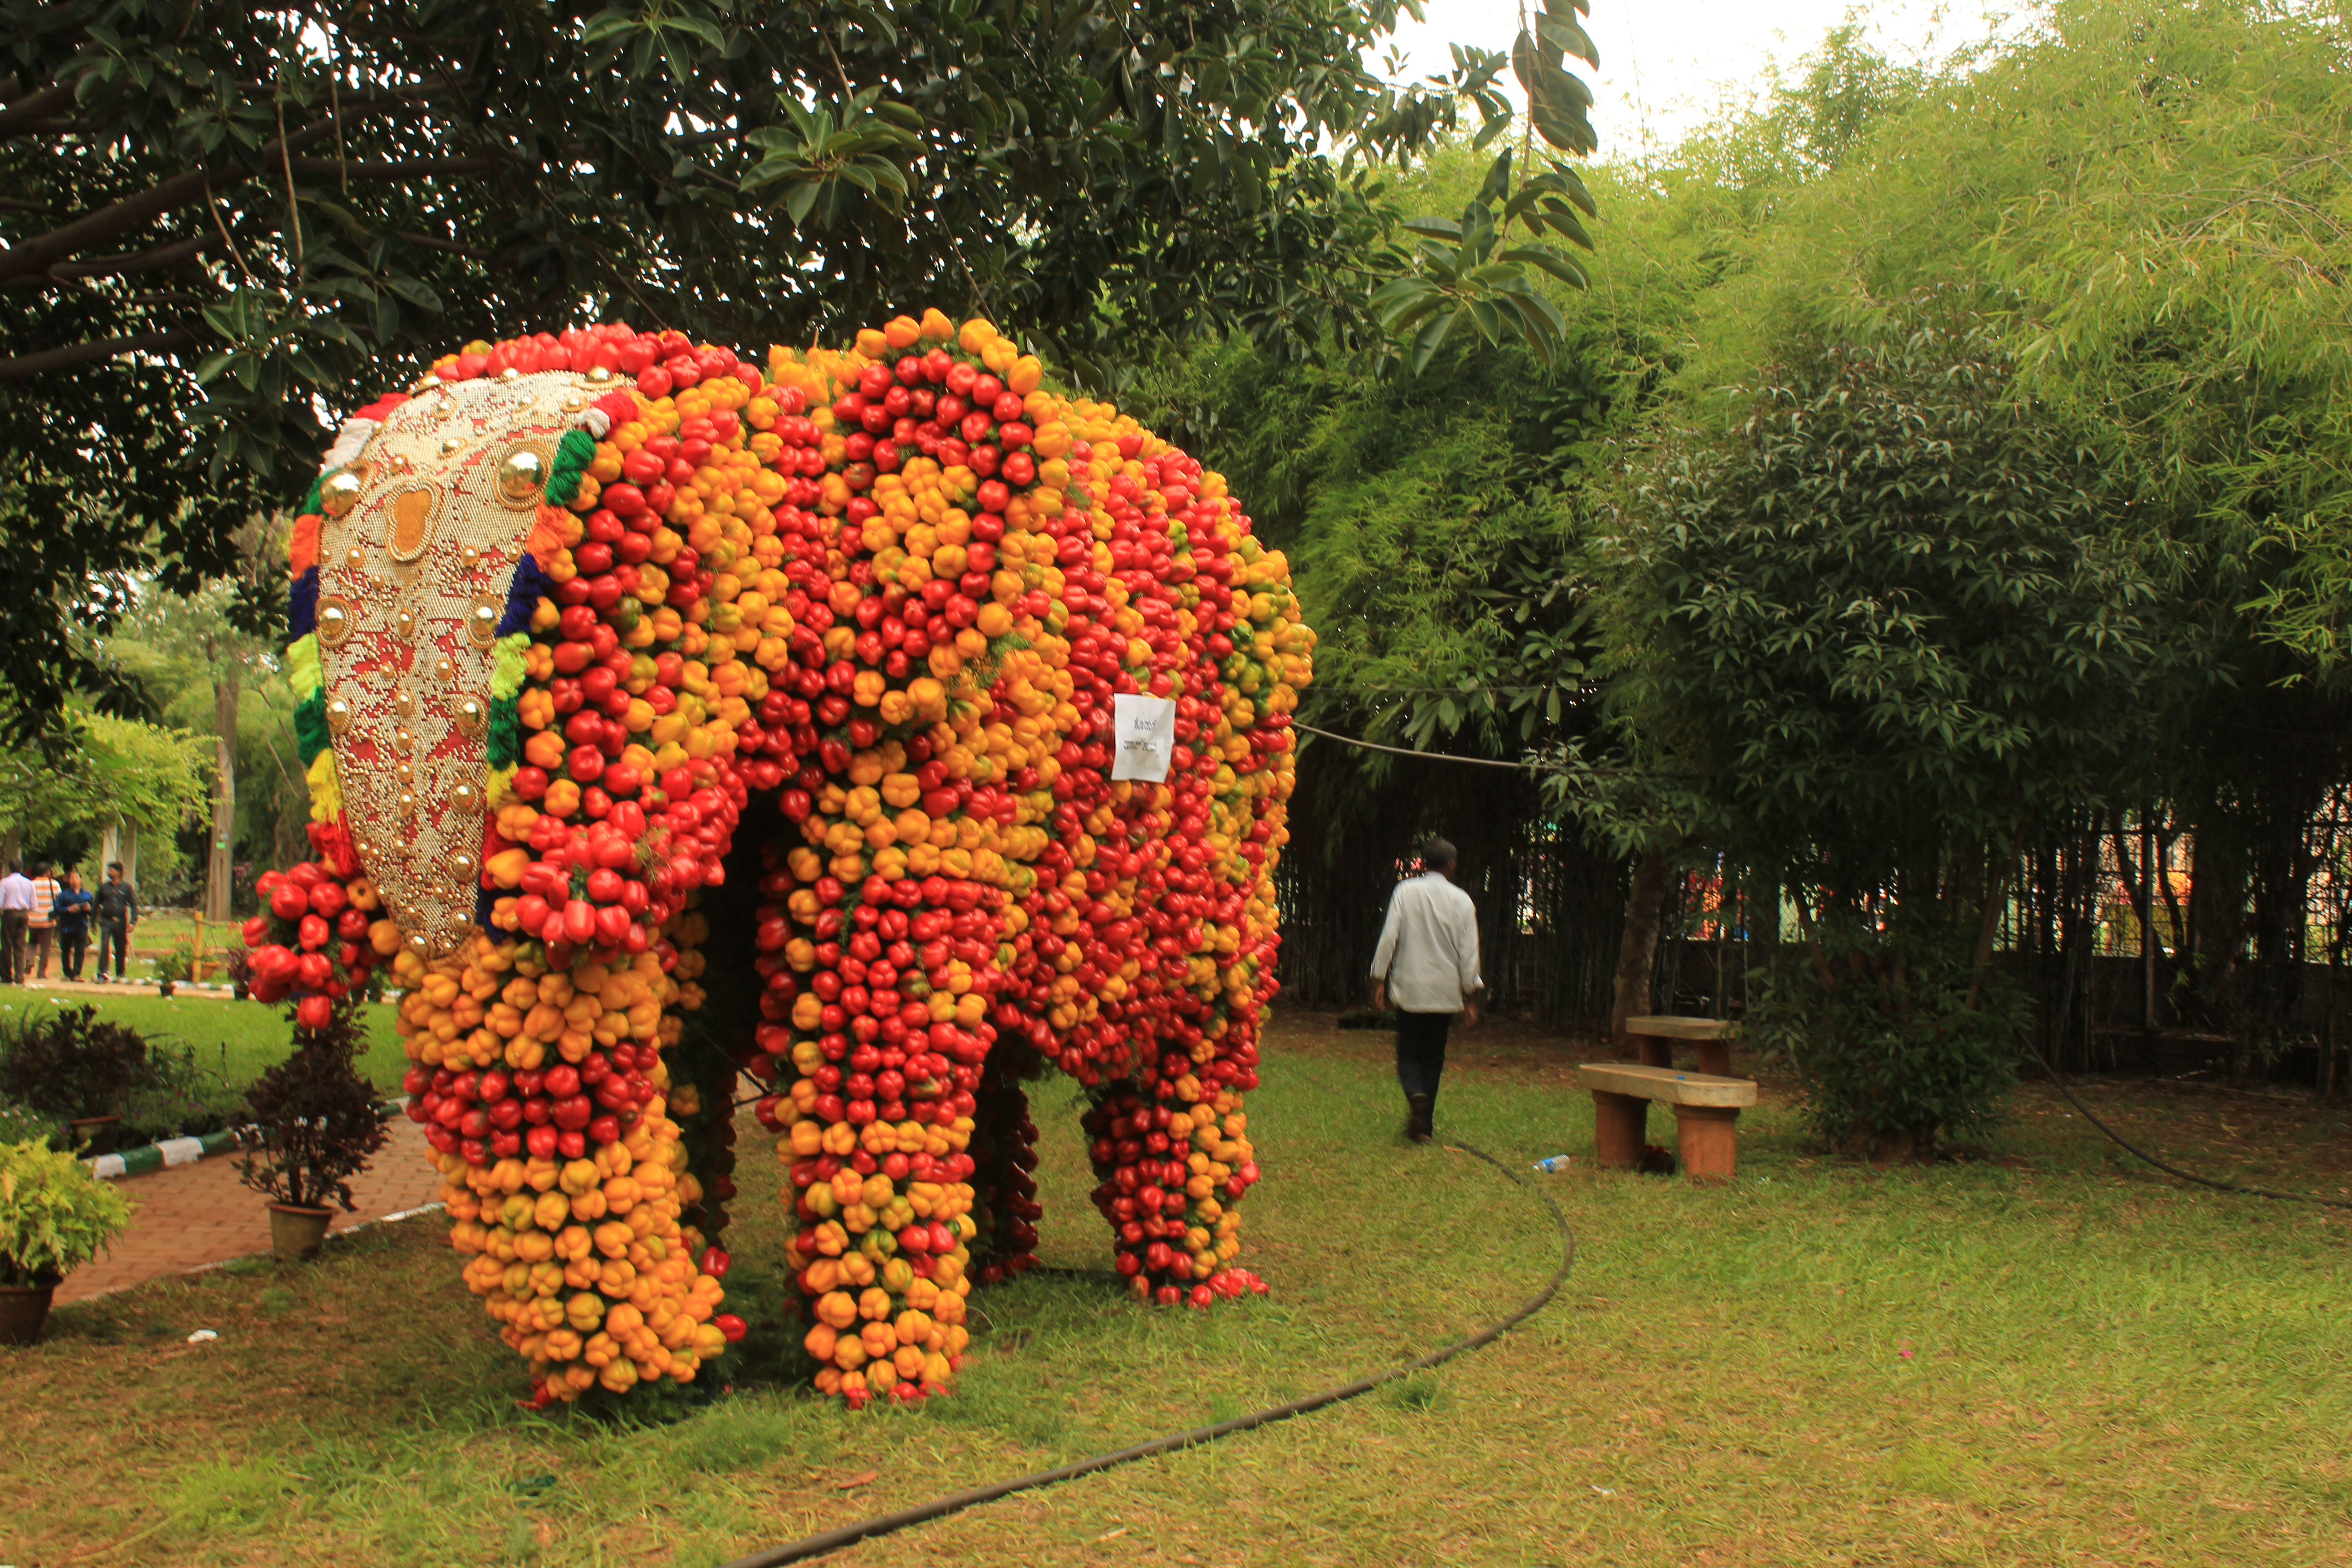 90c1786f4458 A stunning replica of a royal elephant adorned with red and yellow  capsicums grabbed eyeballs at the Independence Day edition of the Lal Bagh  Flower Show ...